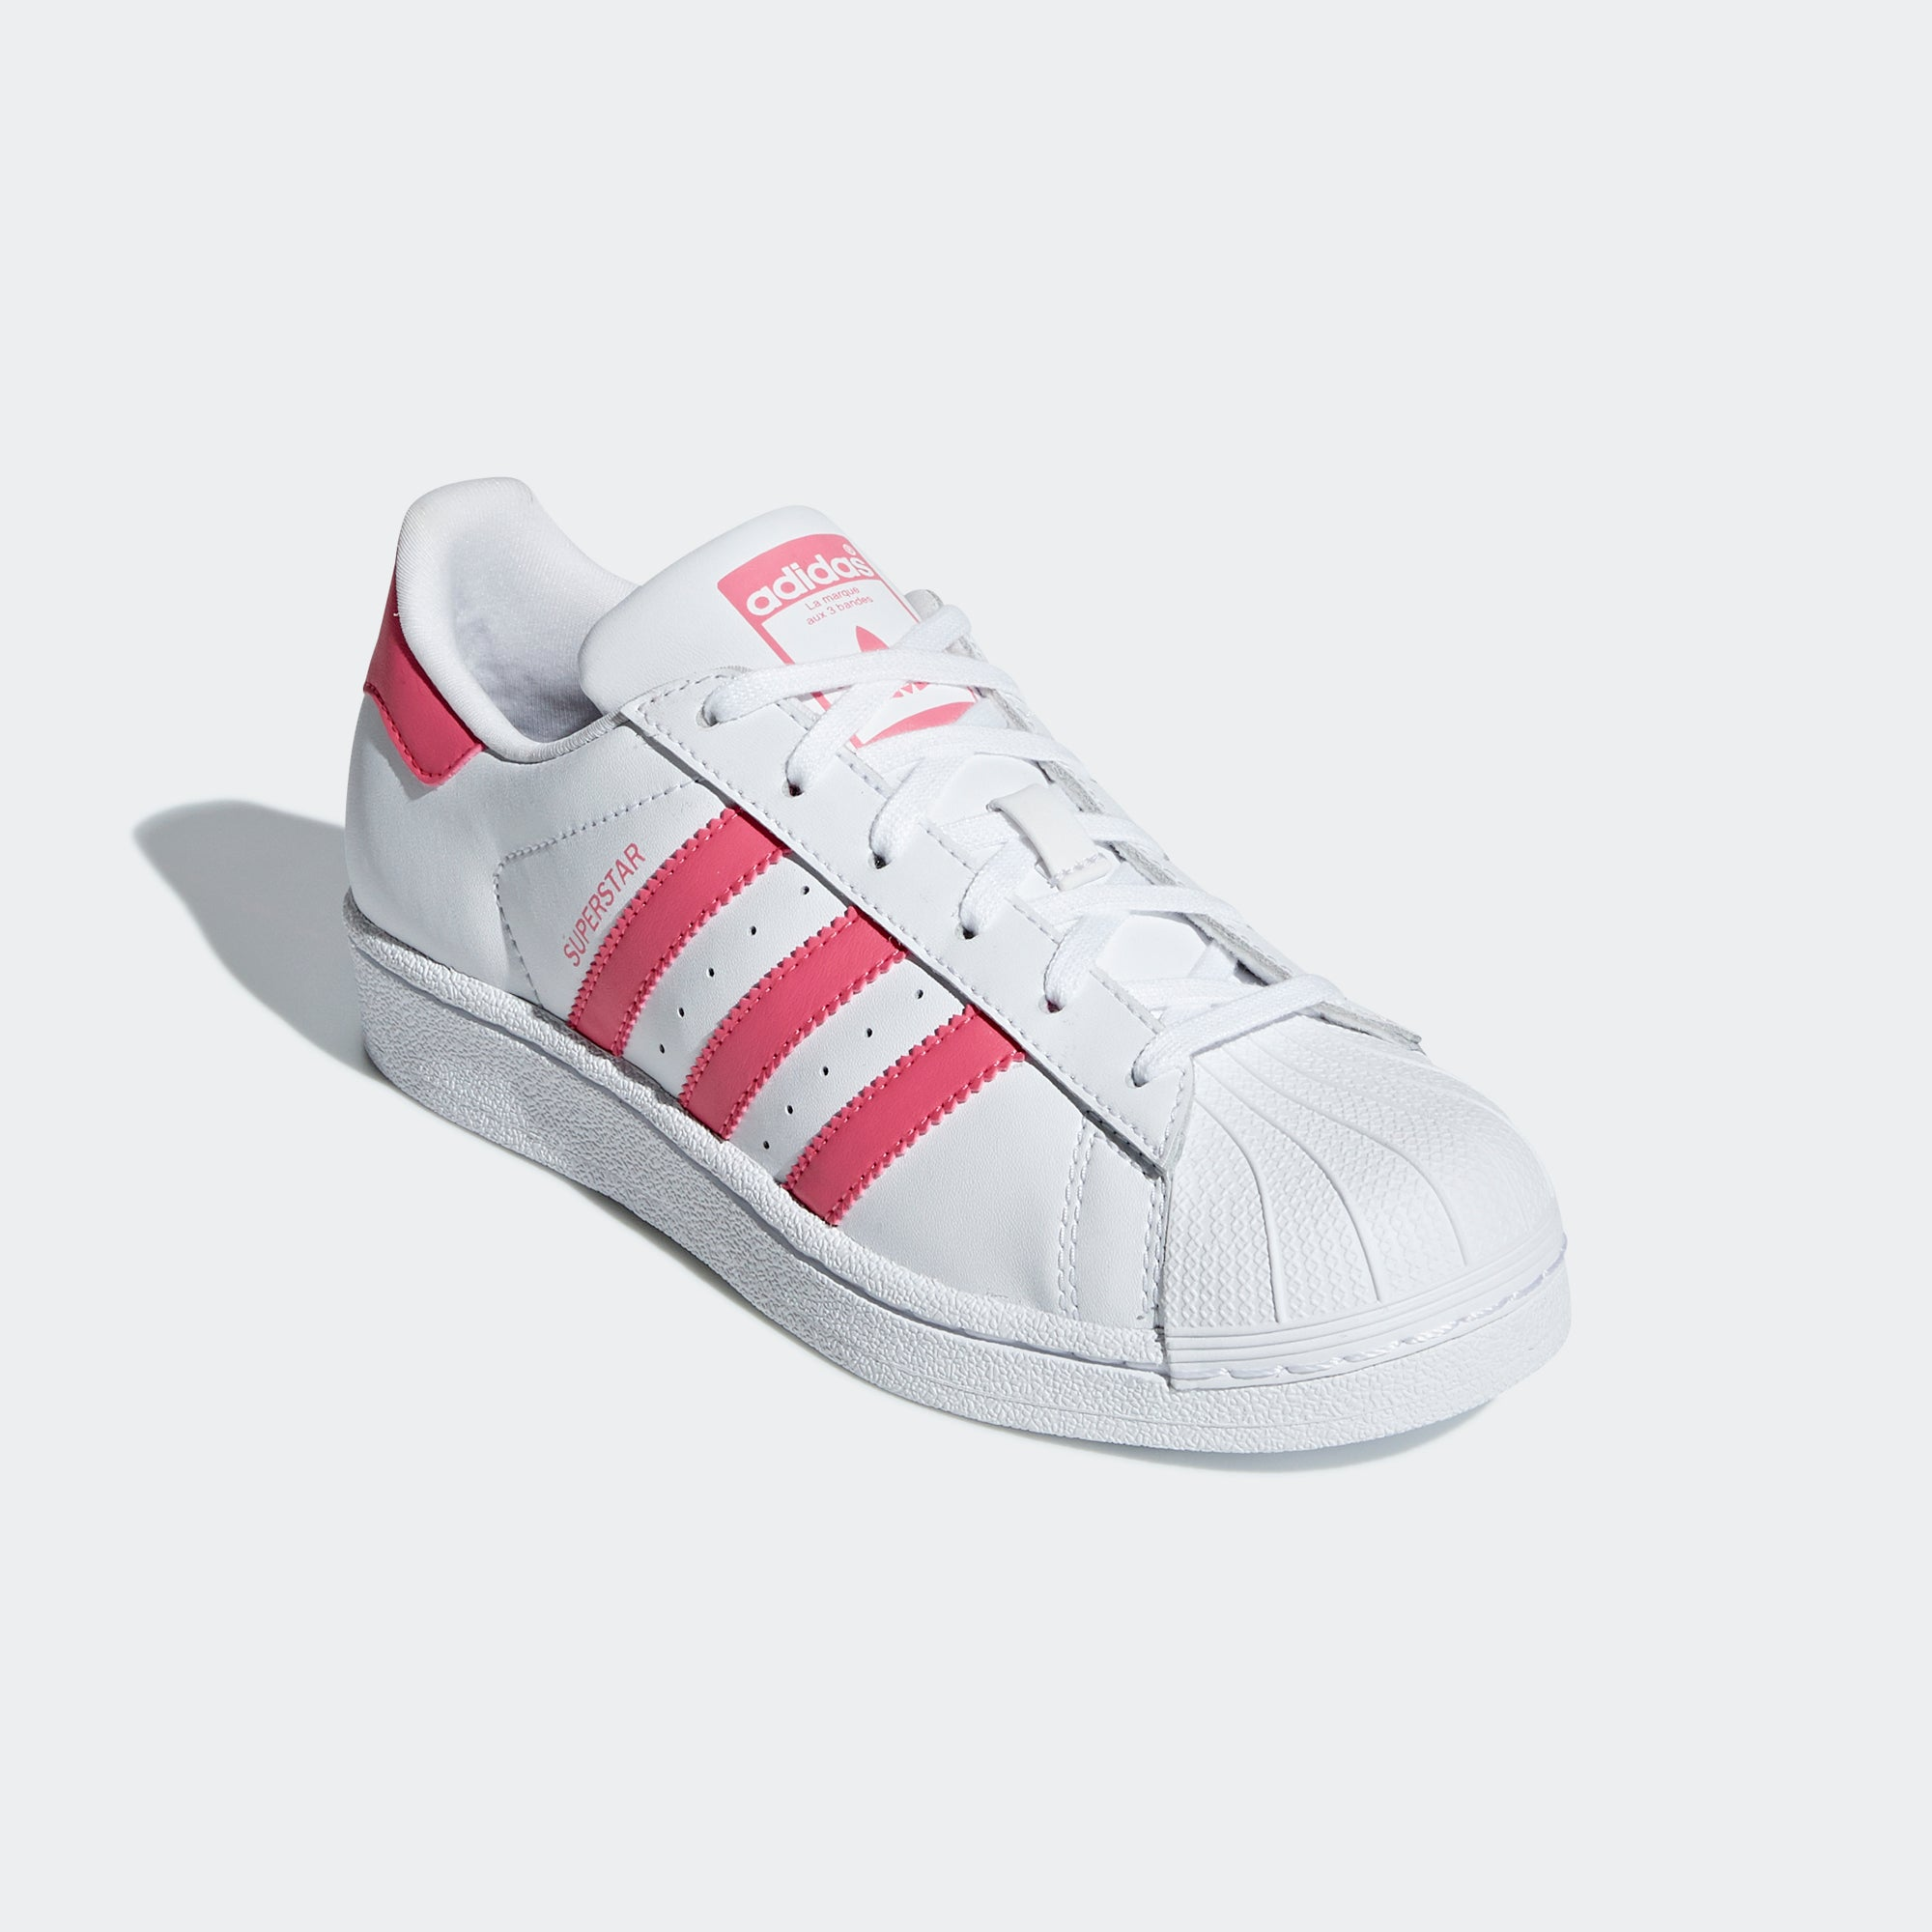 low priced 0d947 4eb5a Kid s adidas Originals Superstar Shoes White Pink. 1